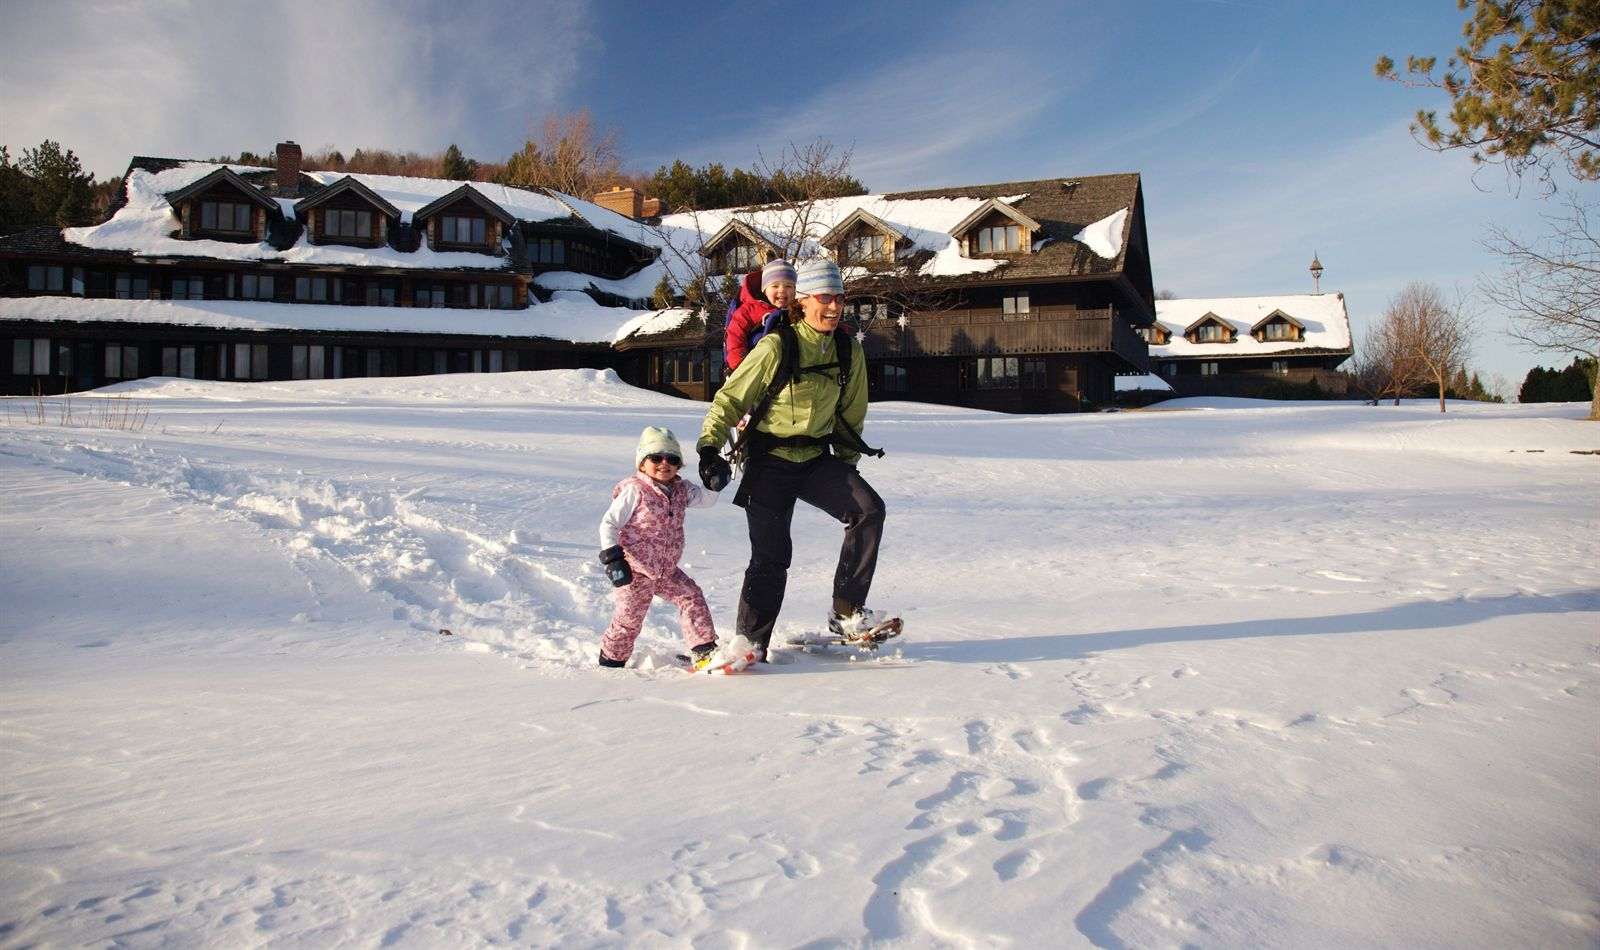 Skiing at our Resort in Stowe, Vermont